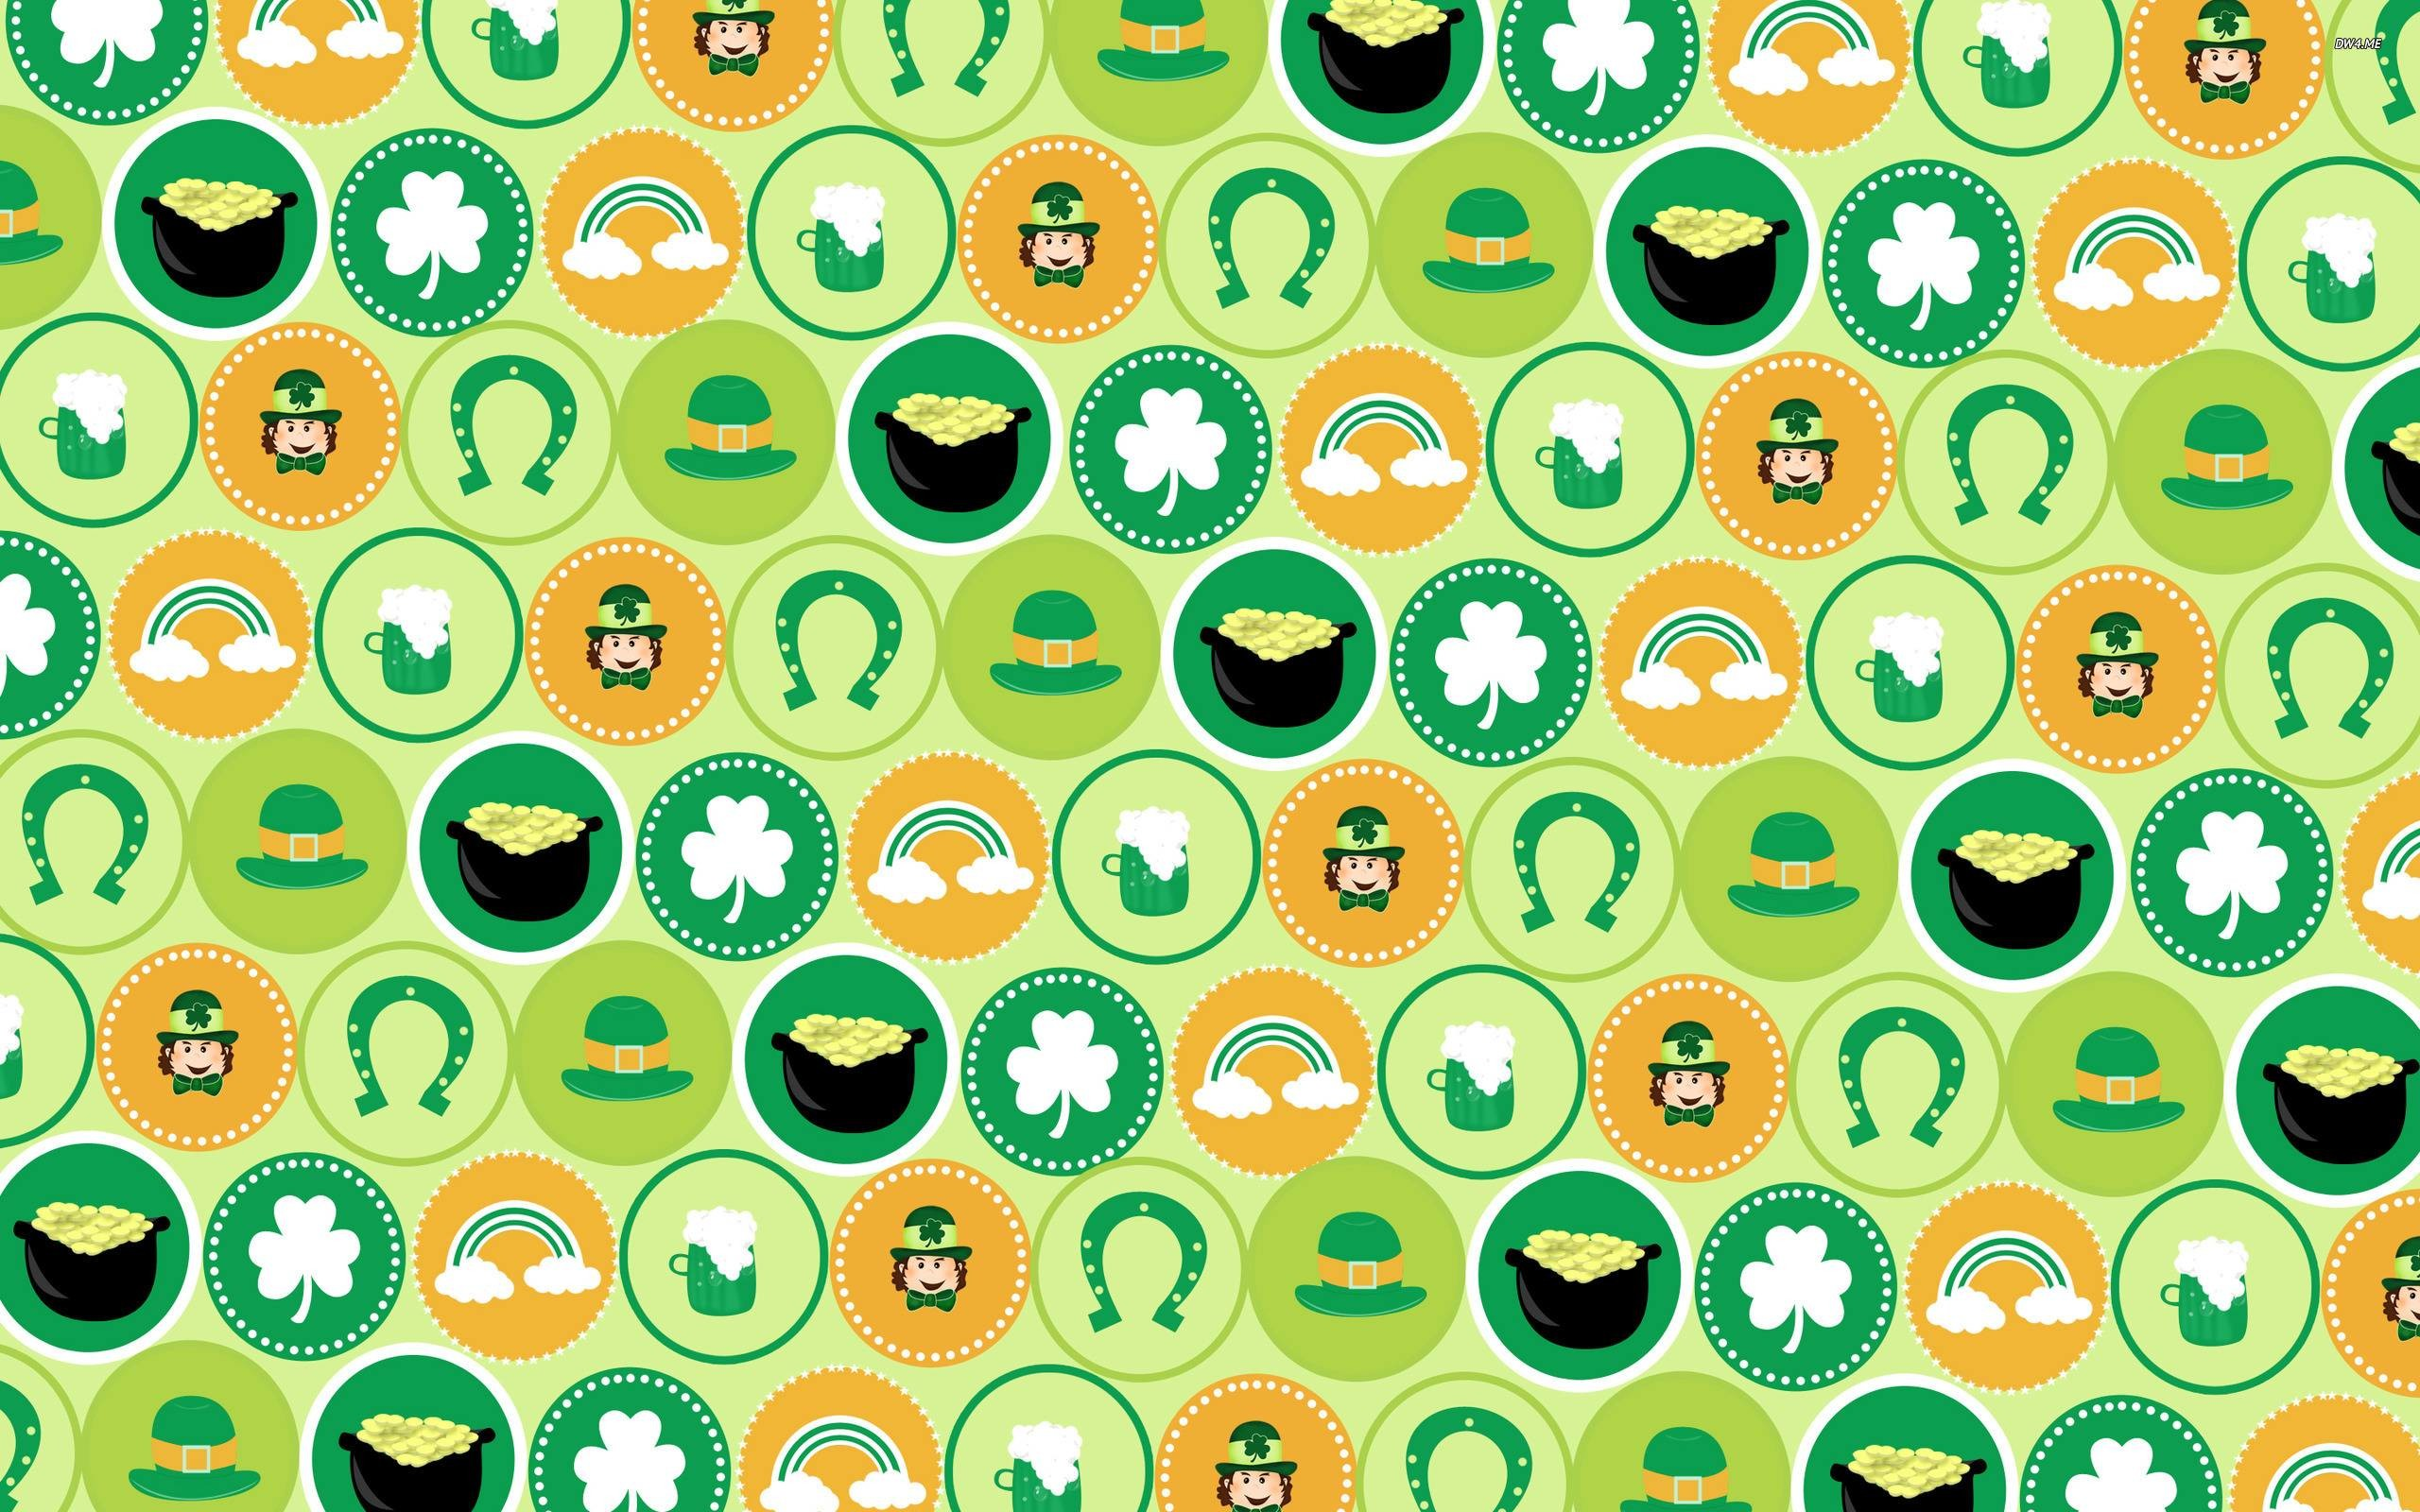 2560x1600 Wallpapers For > St Patricks Day Wallpaper Rainbow